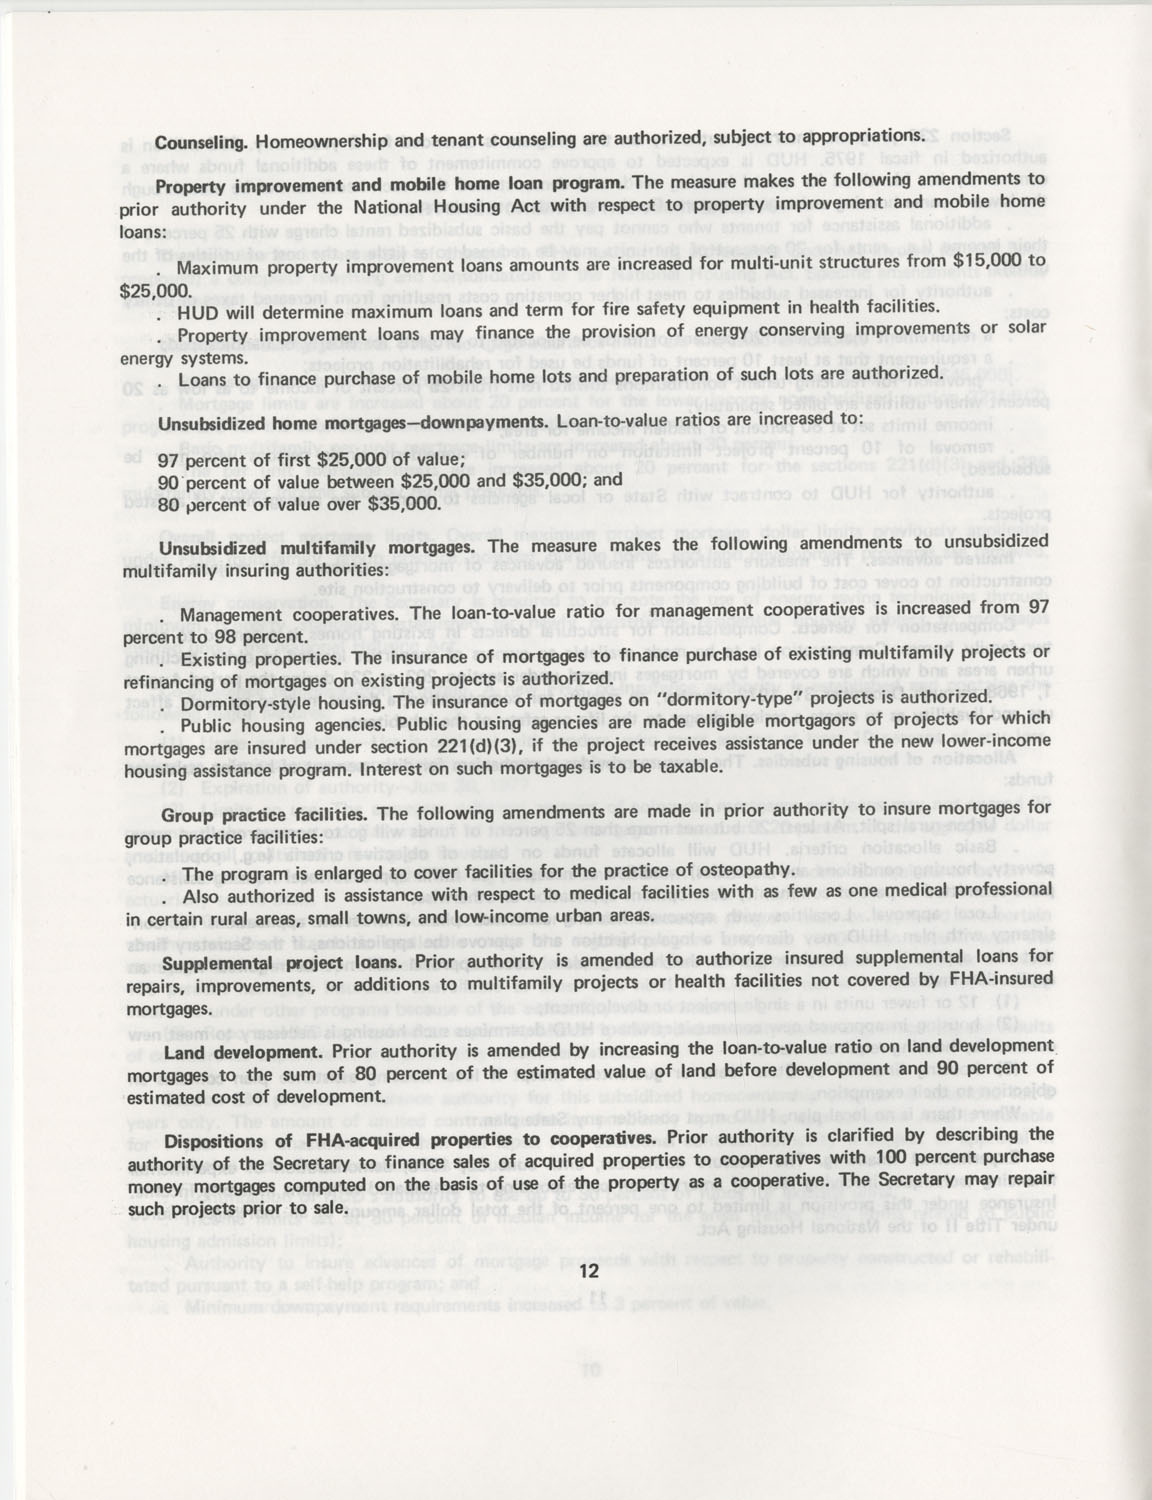 Summary of the Housing and Community Development Act of 1974, Page 12